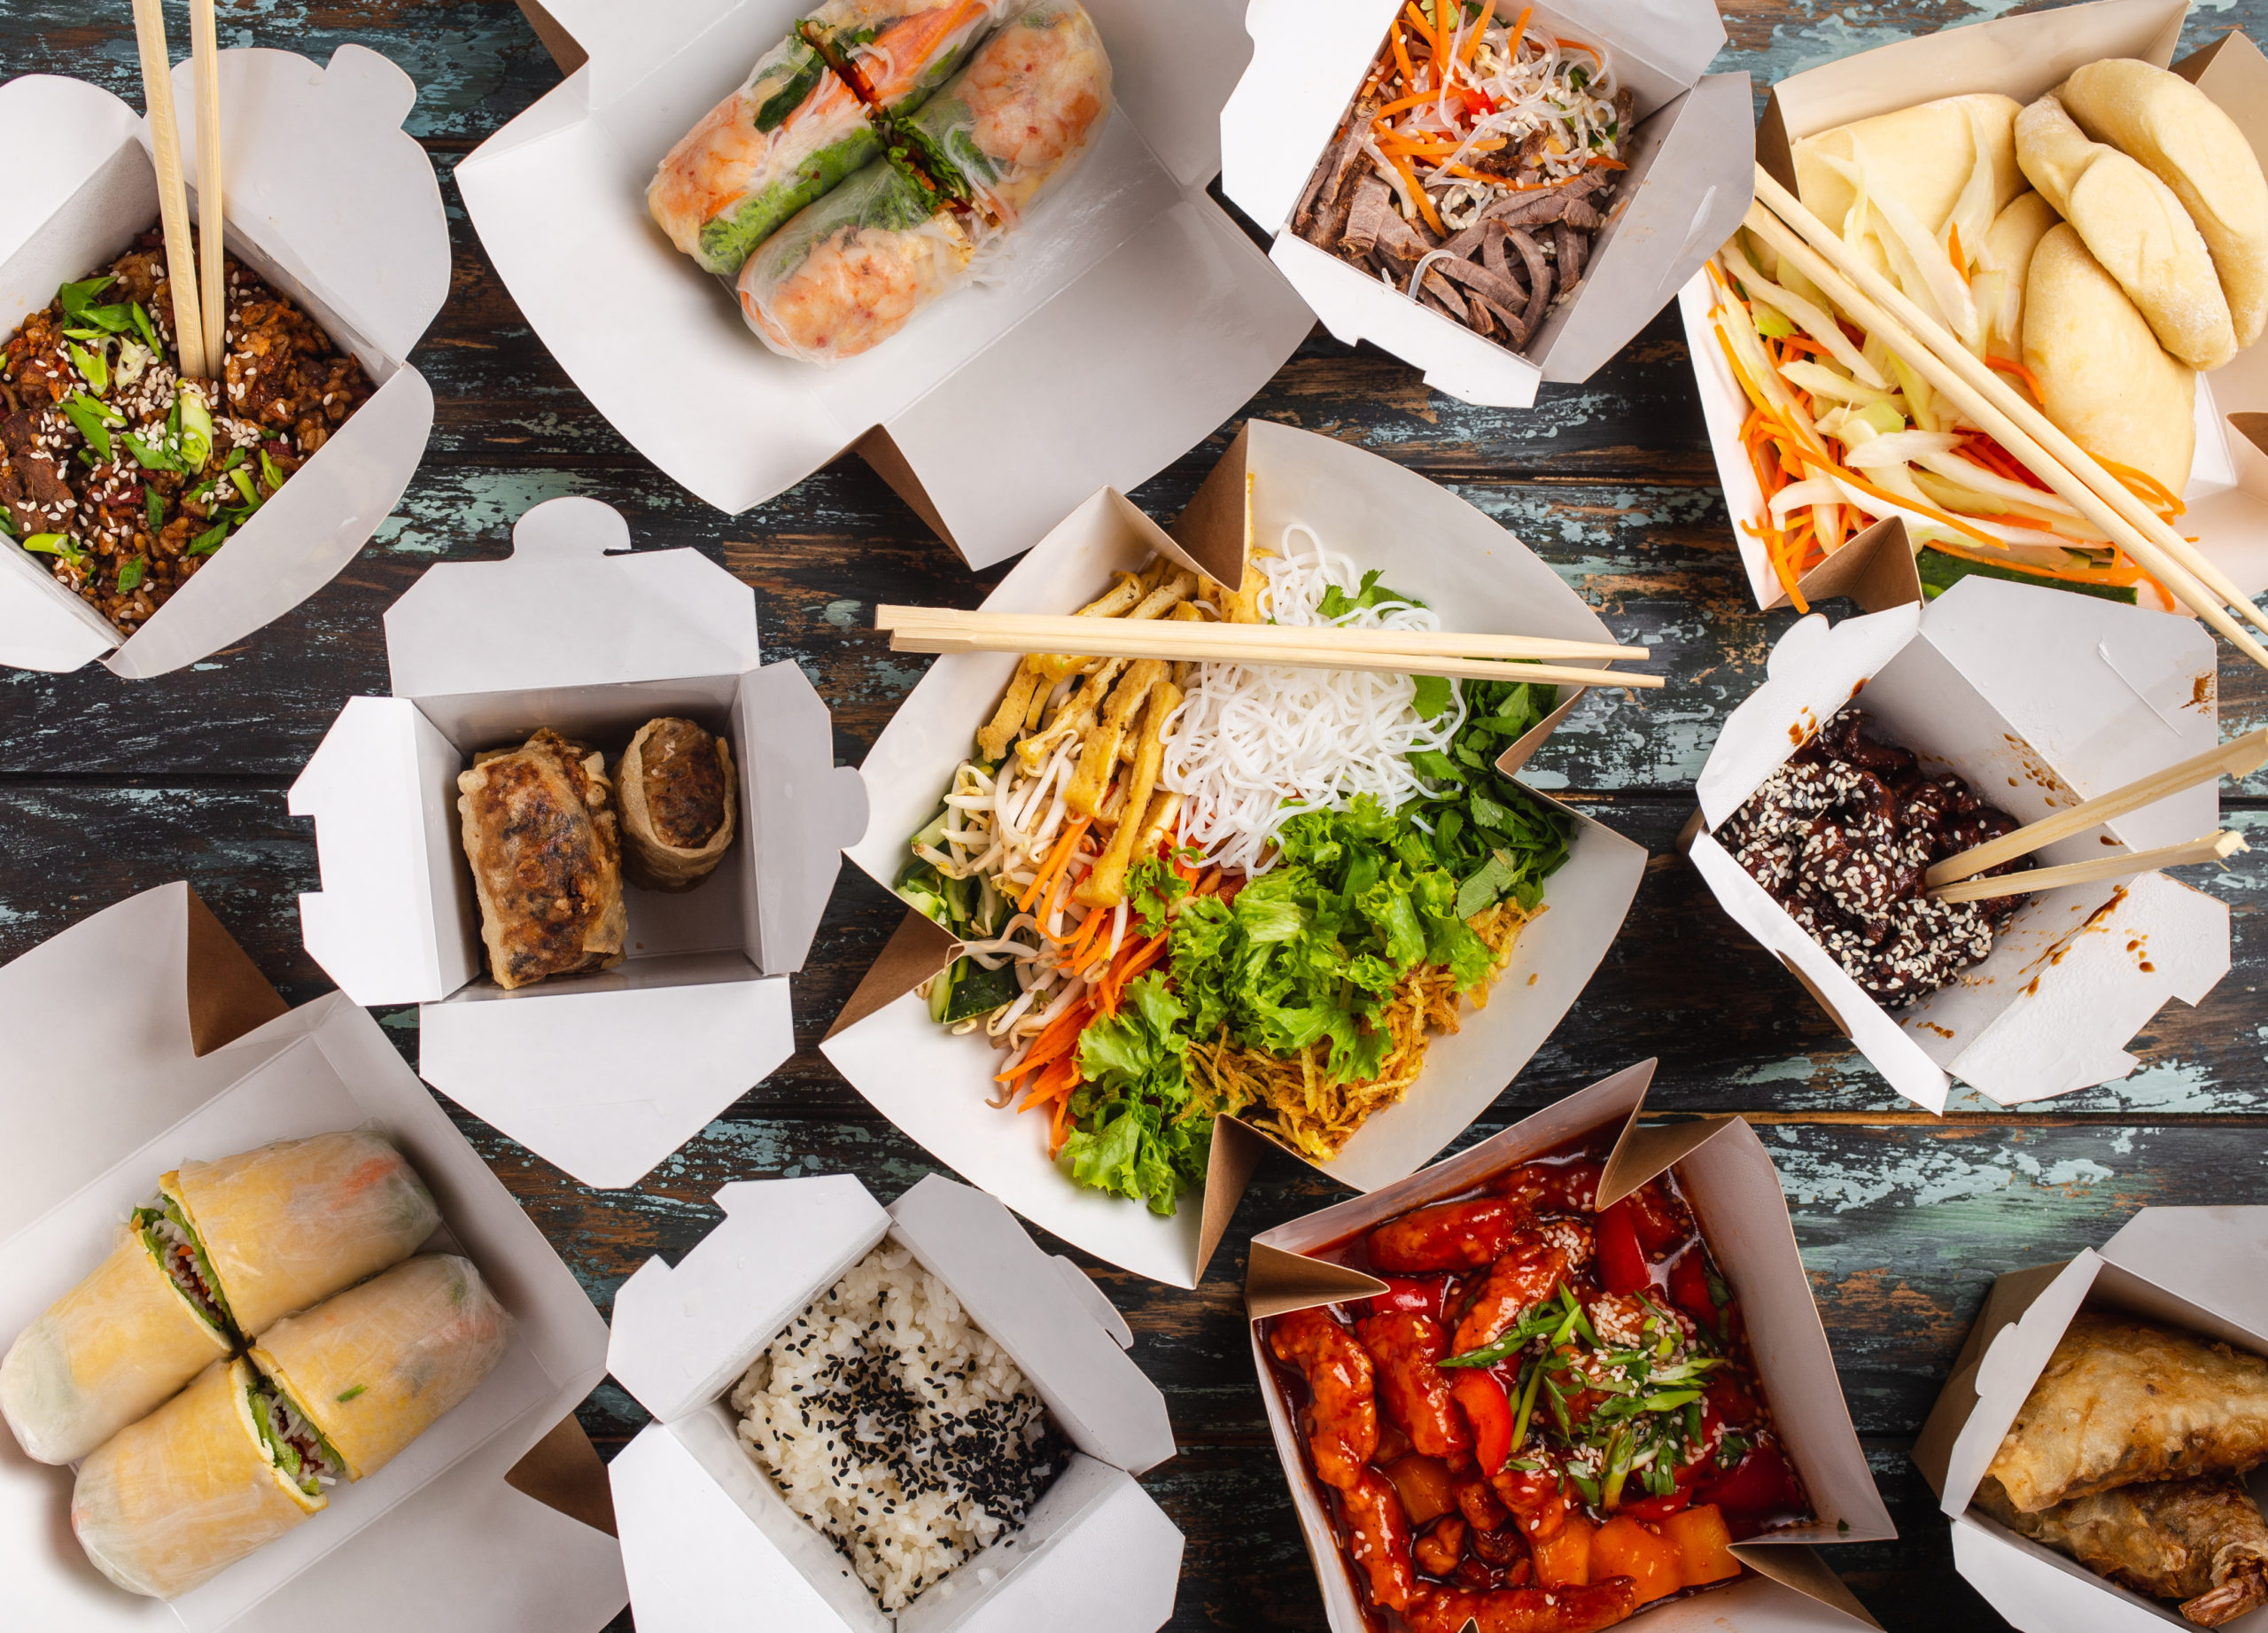 Assorted Chinese dishes in paper delivery boxes seen from above